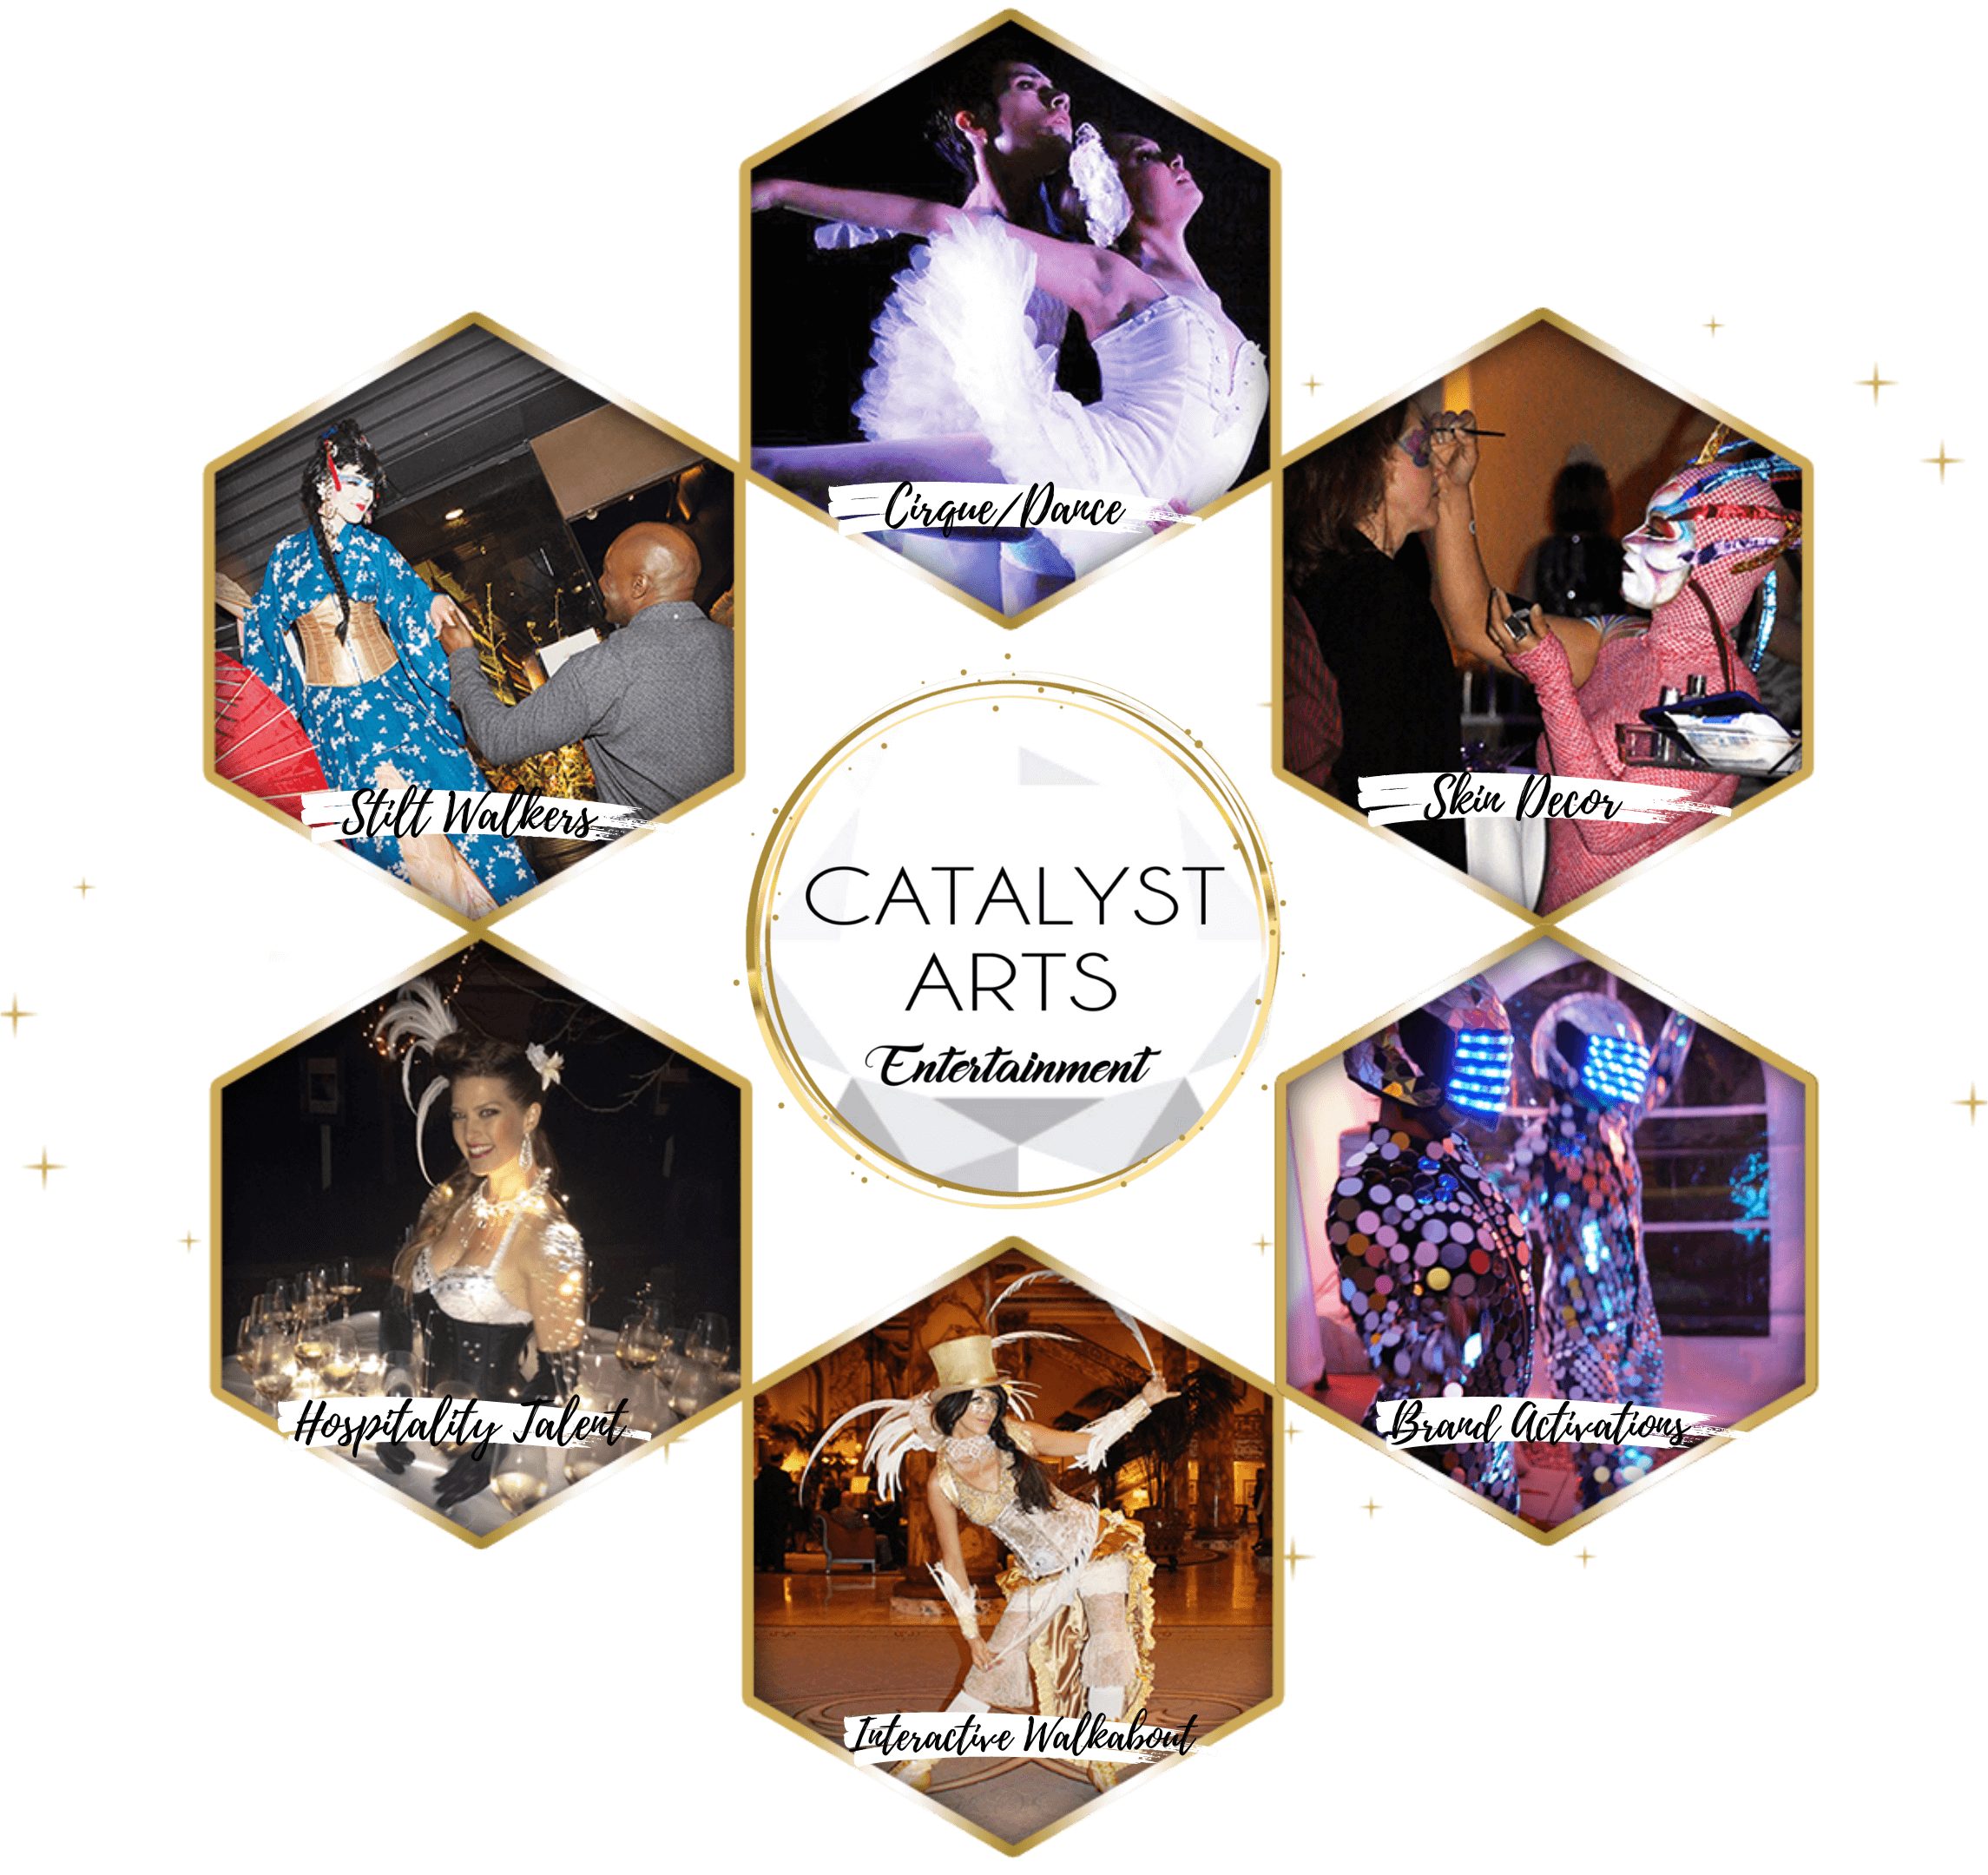 Catalyst Arts Entertainment Categories , cirque, dance, stilts, activations, character models